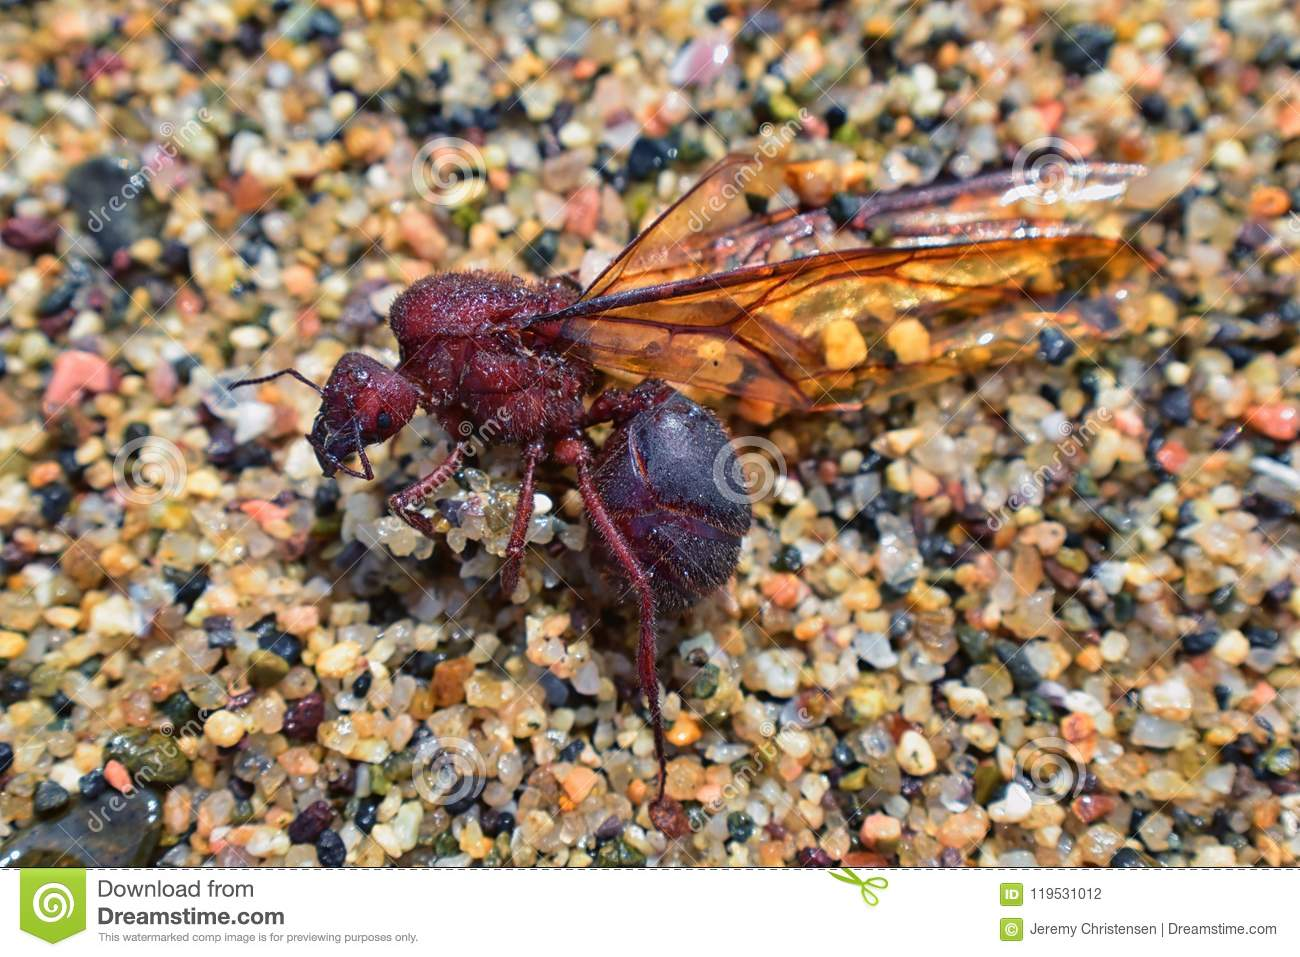 Winged Male Drone Leafcutter ants, macro close up view, dying on beach after mating flight with queen in Puerto Vallarta Mexico. S